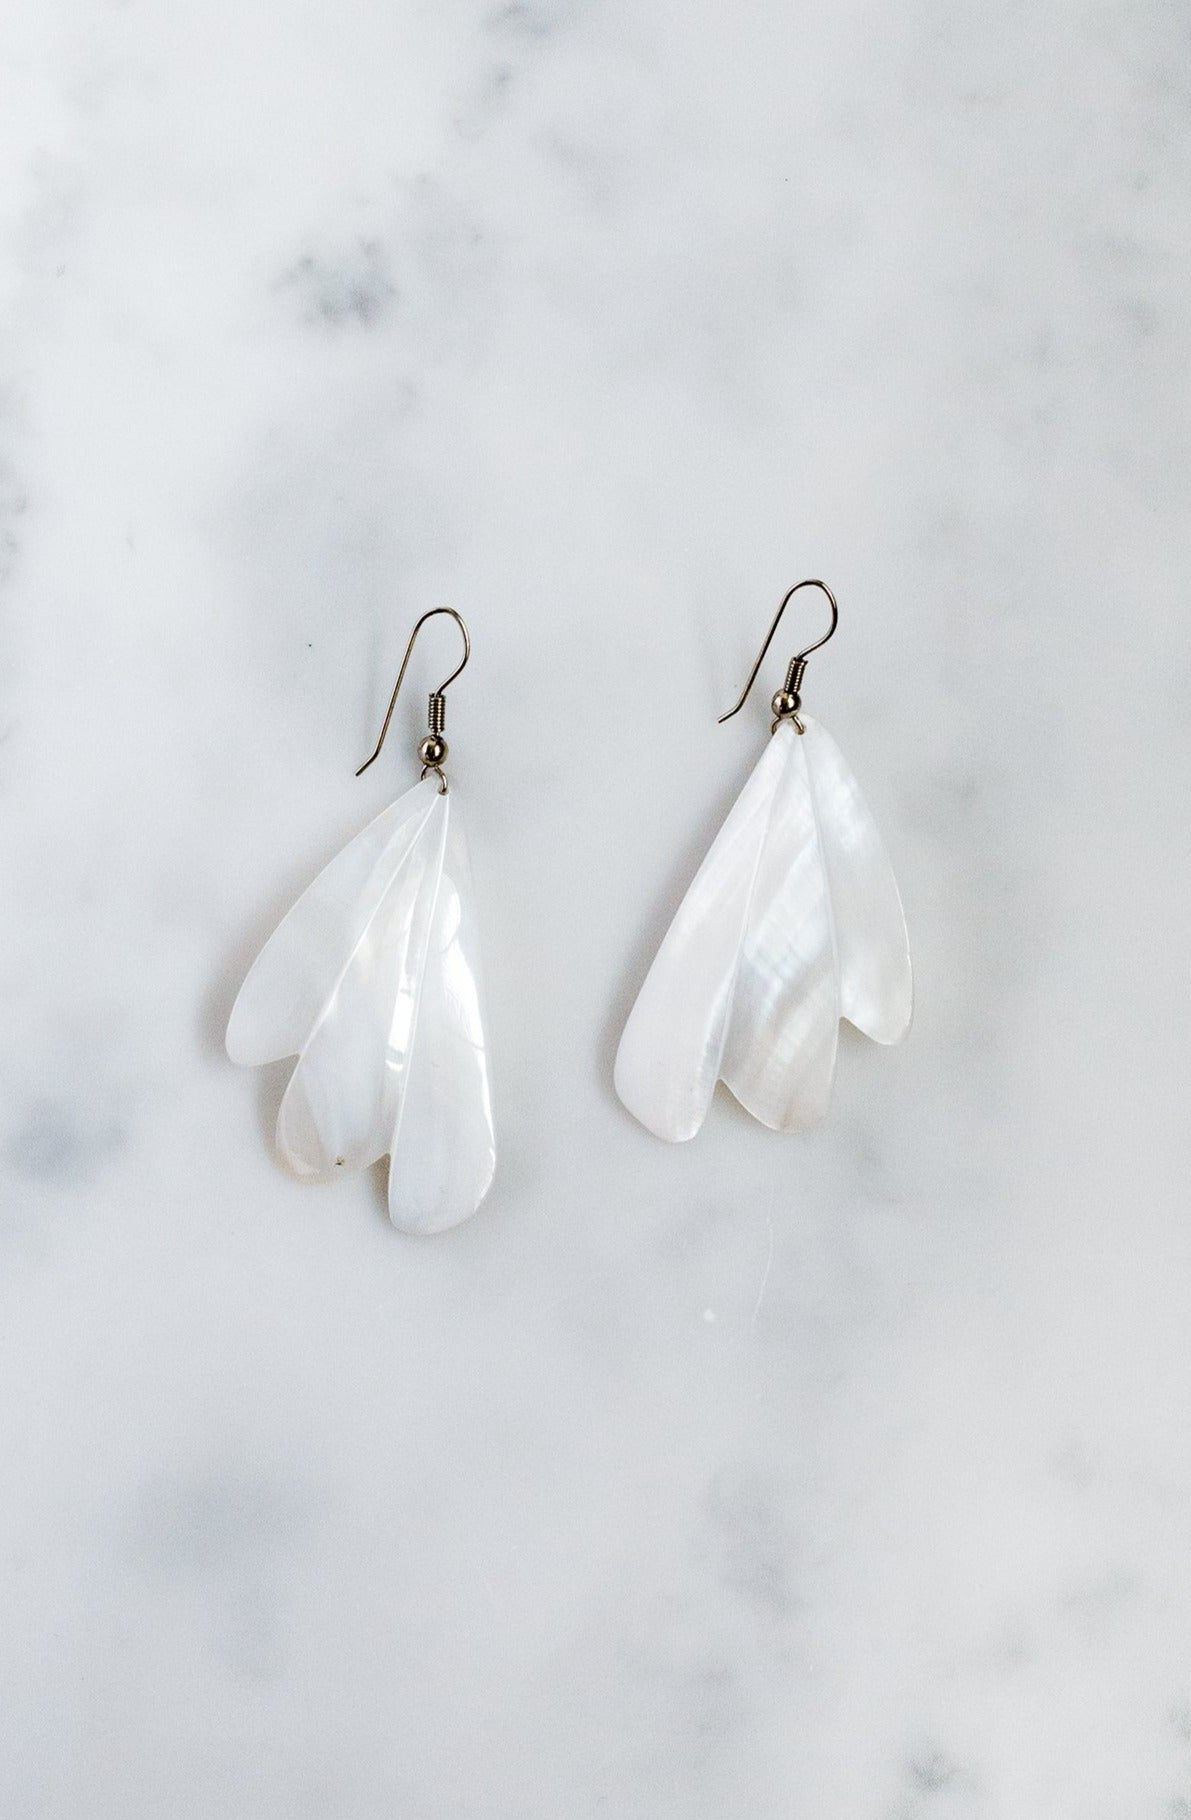 Mother-of-pearl shell earrings with engraved wing-shaped design and silver-tone wire fastening.